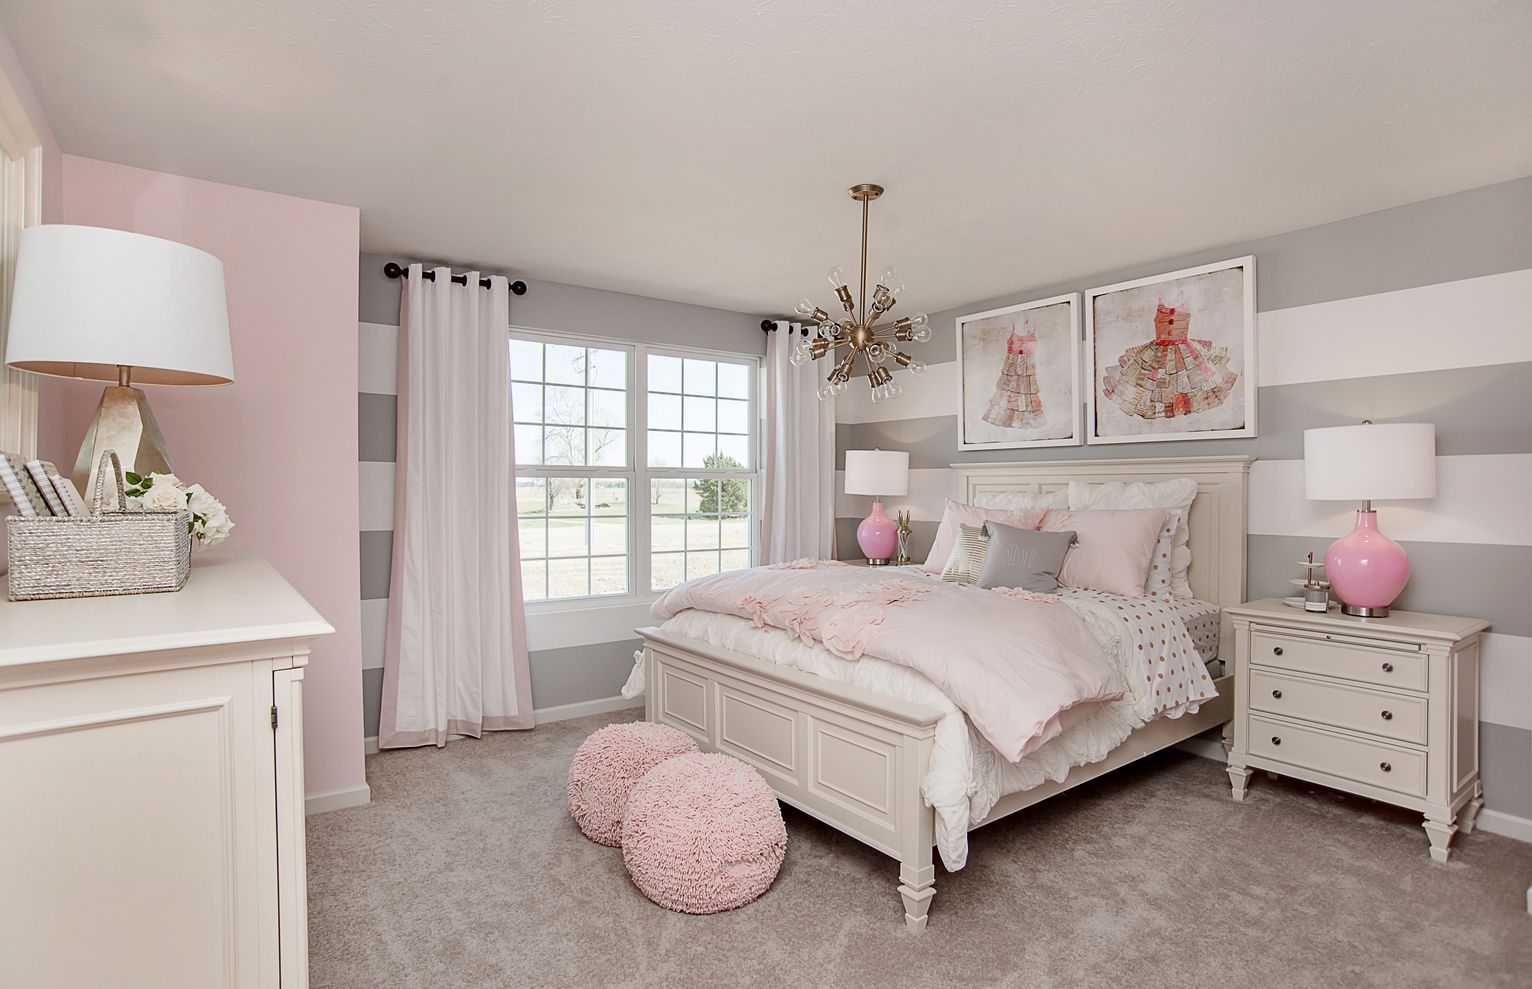 69 cute apartment bedroom ideas you will love round decor - Cute bedroom ...